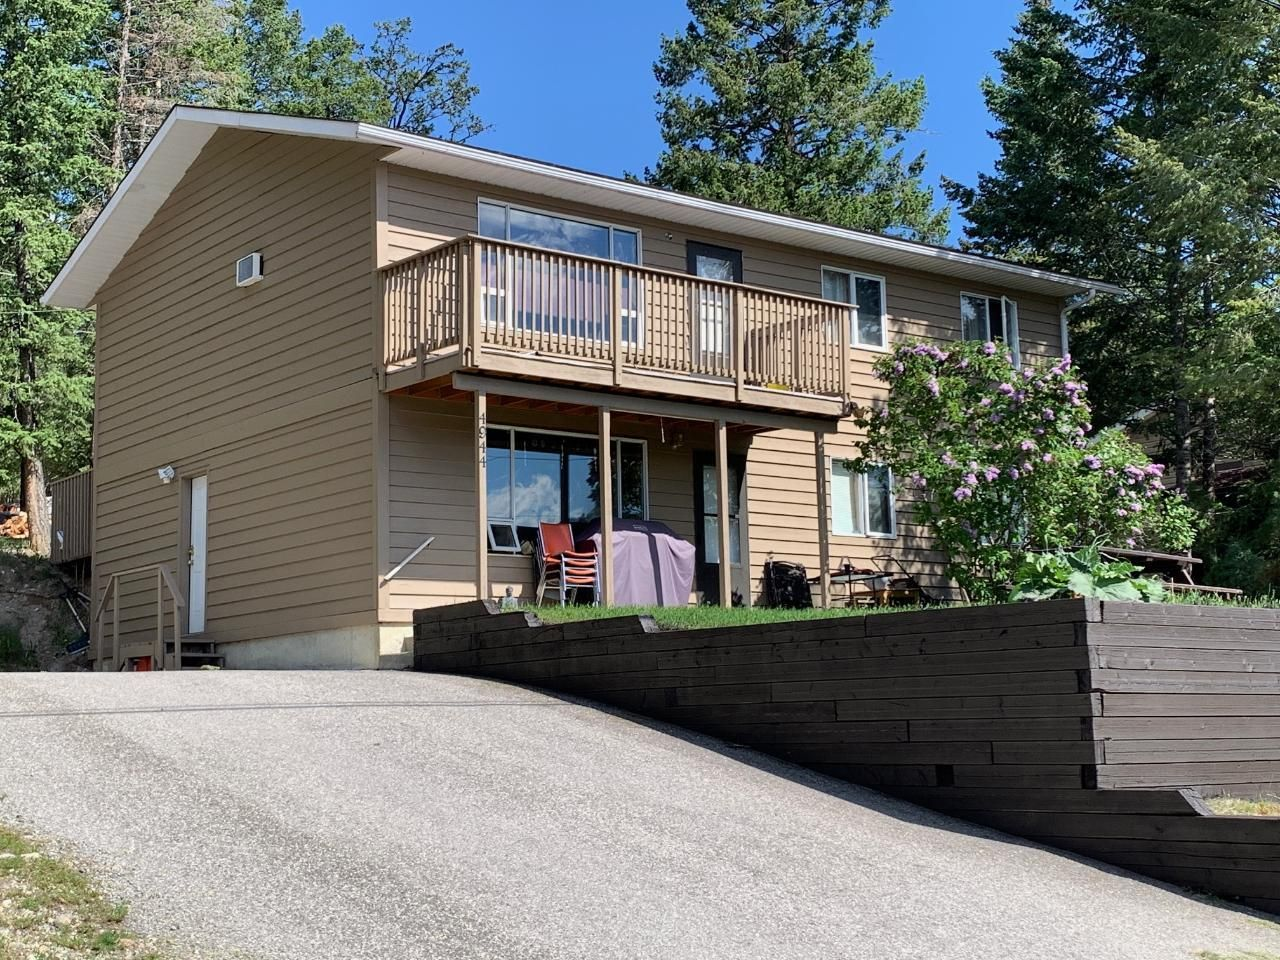 Main Photo: 4944 HOT SPRINGS RD in Fairmont Hot Springs: House for sale : MLS®# 2457458